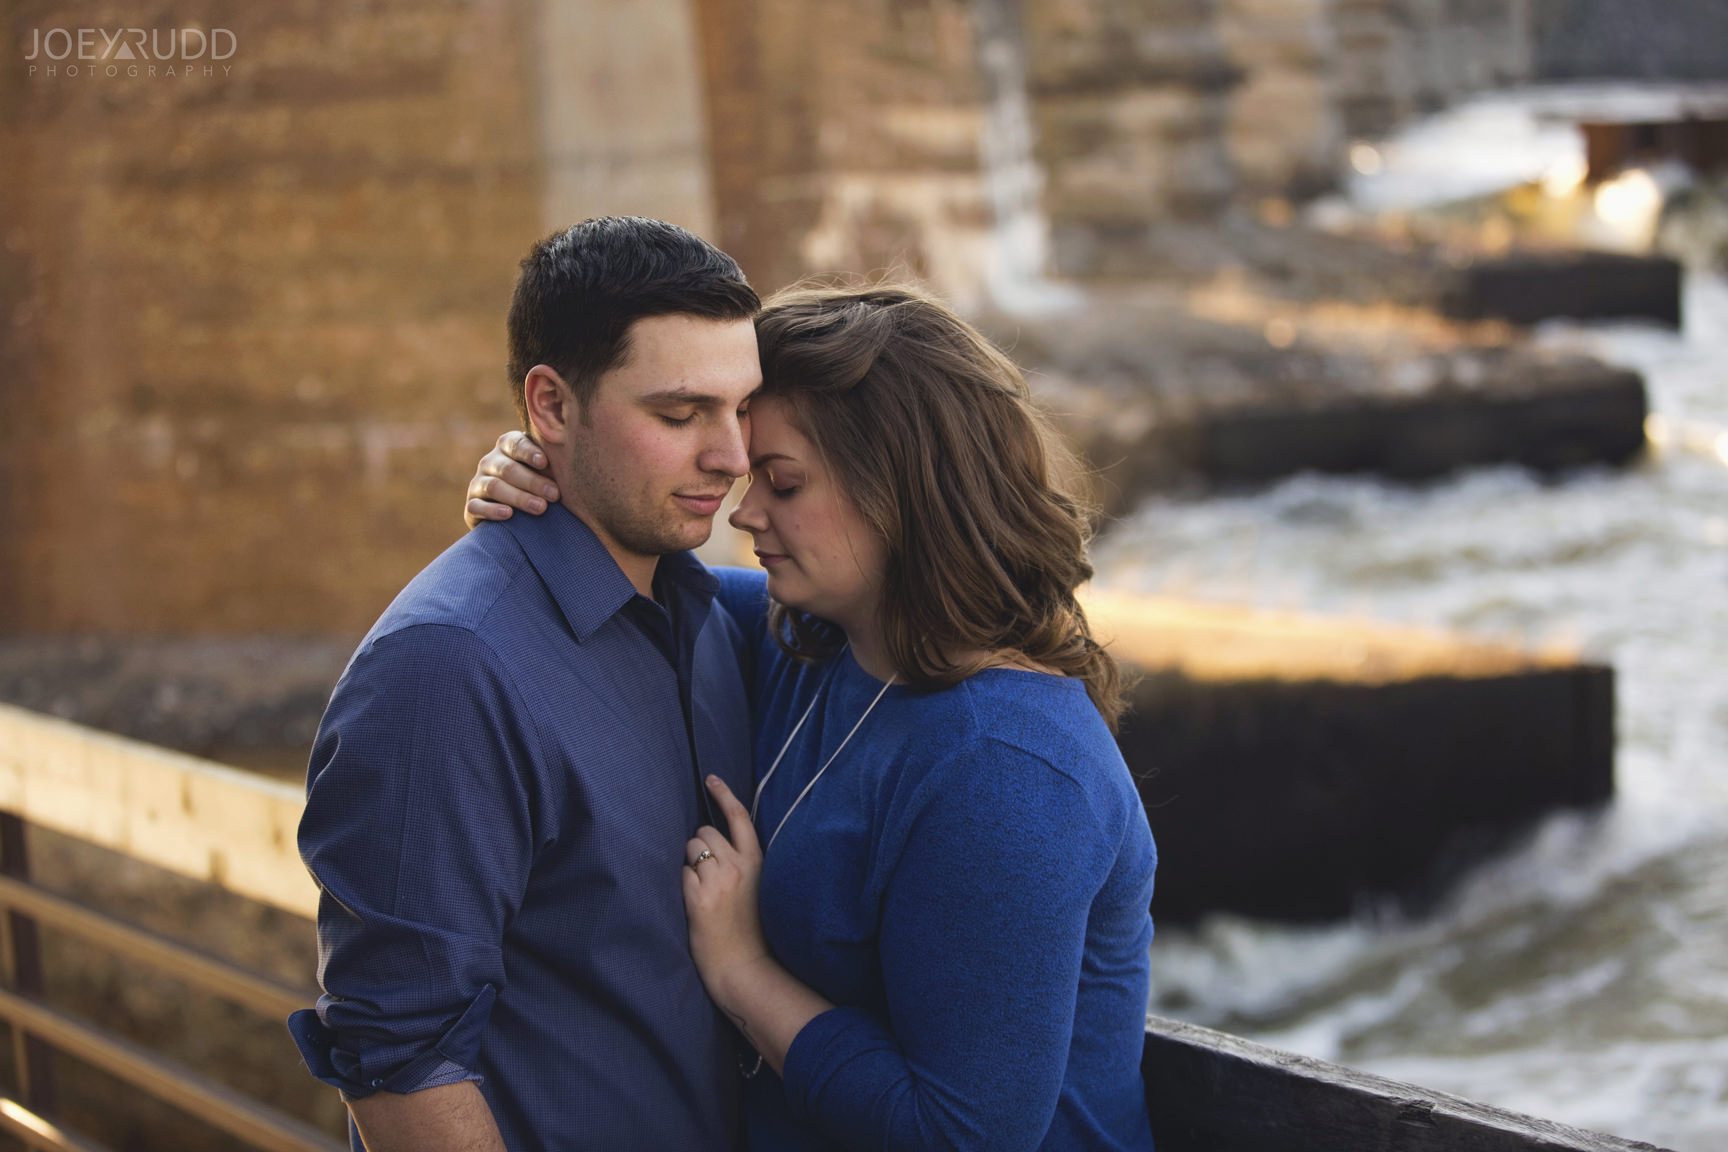 Almonte engagement photography by ottawa wedding photographer joey rudd photography River